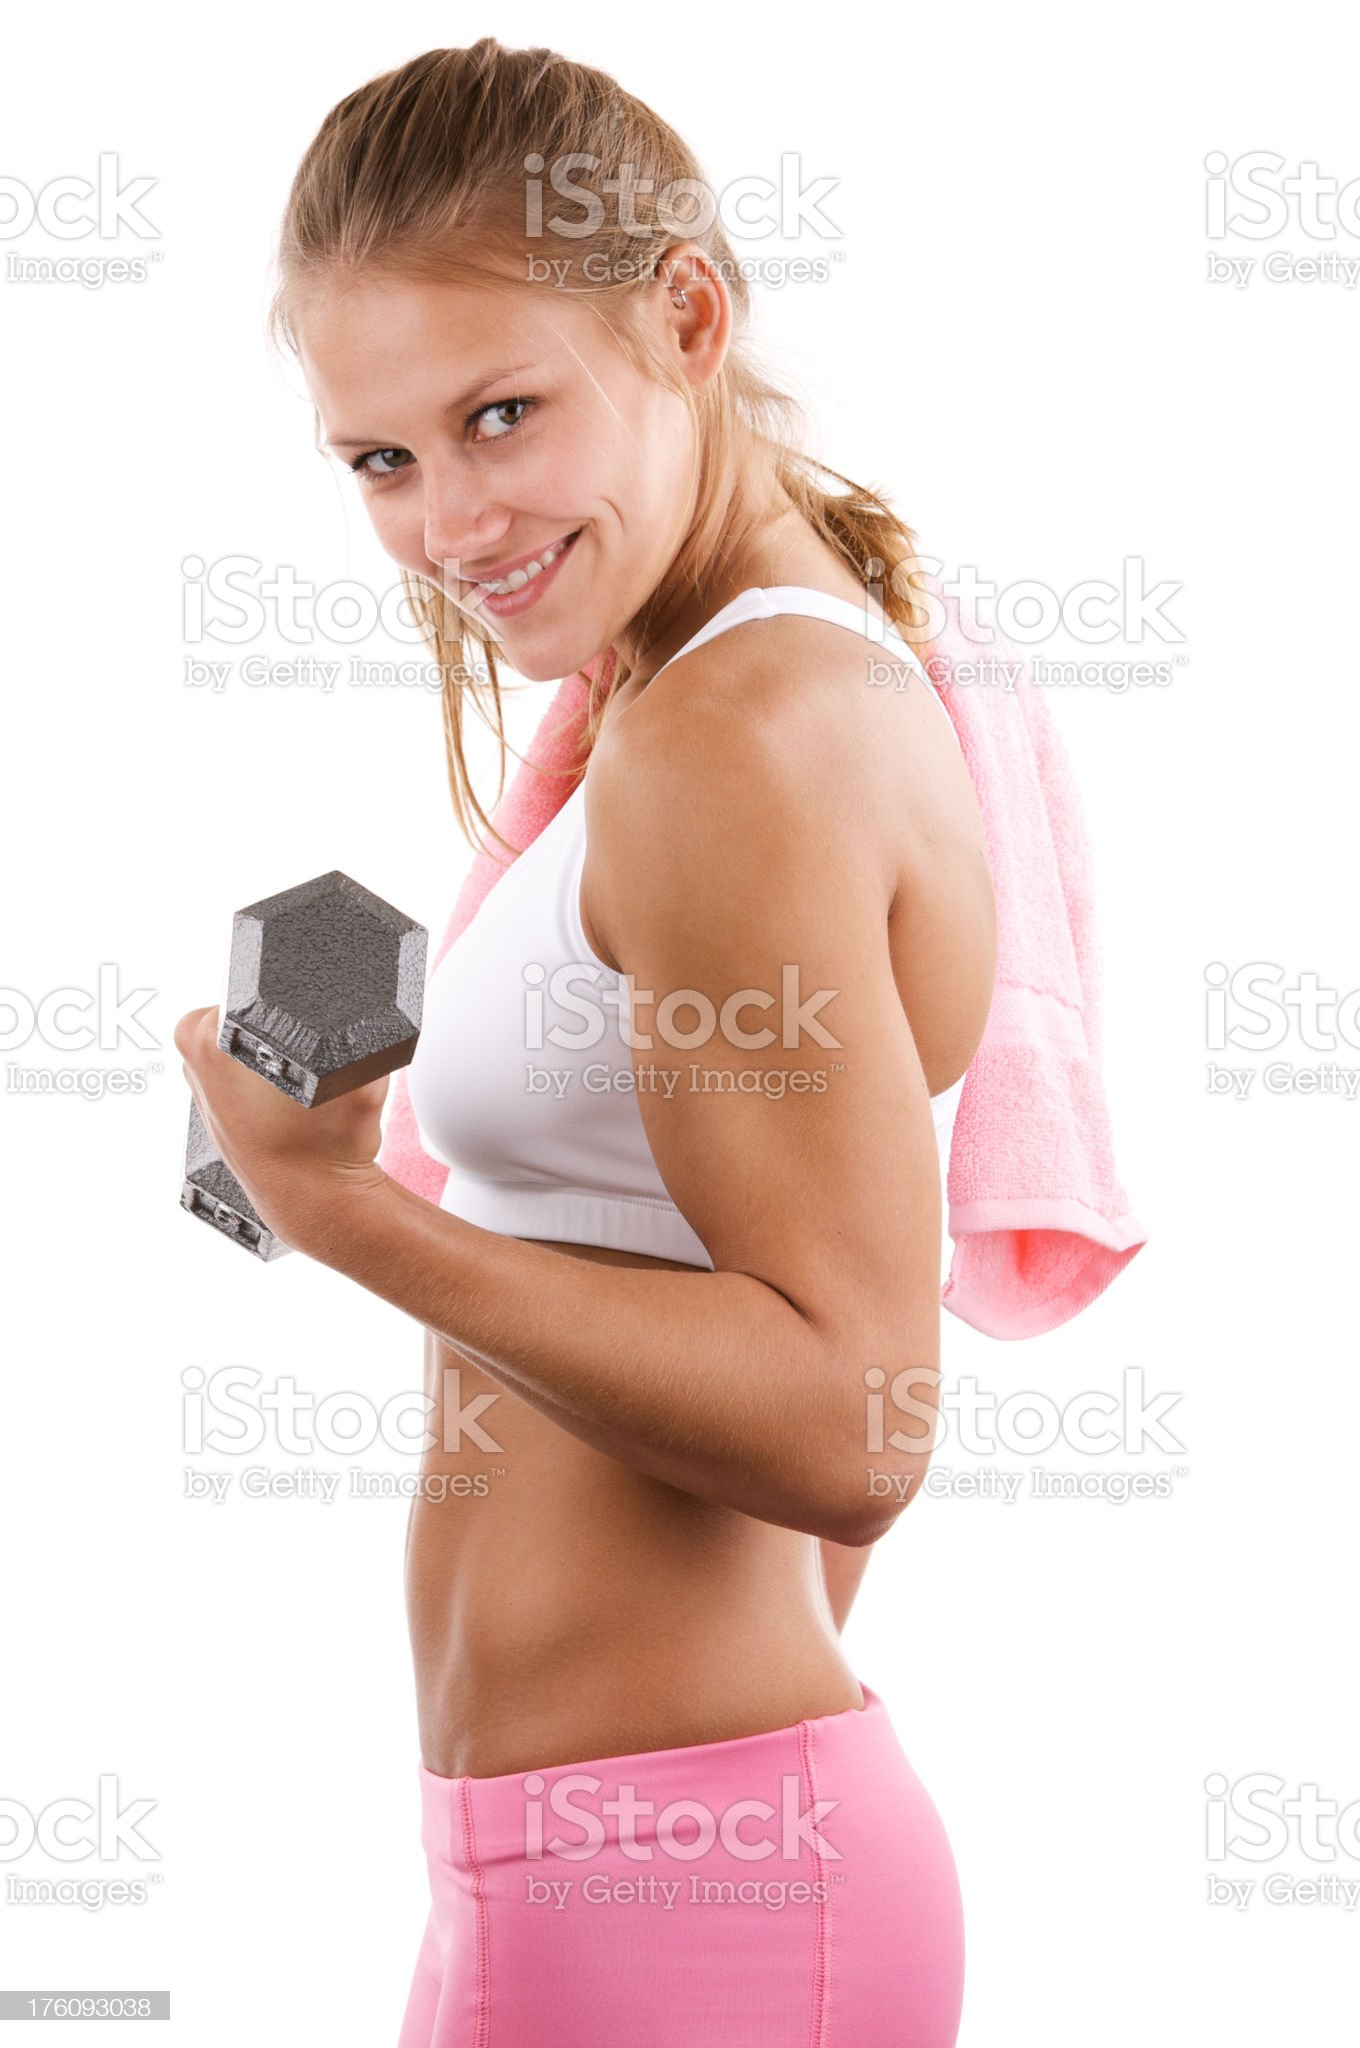 Young blonde lifting dumbbell weight royalty-free stock photo